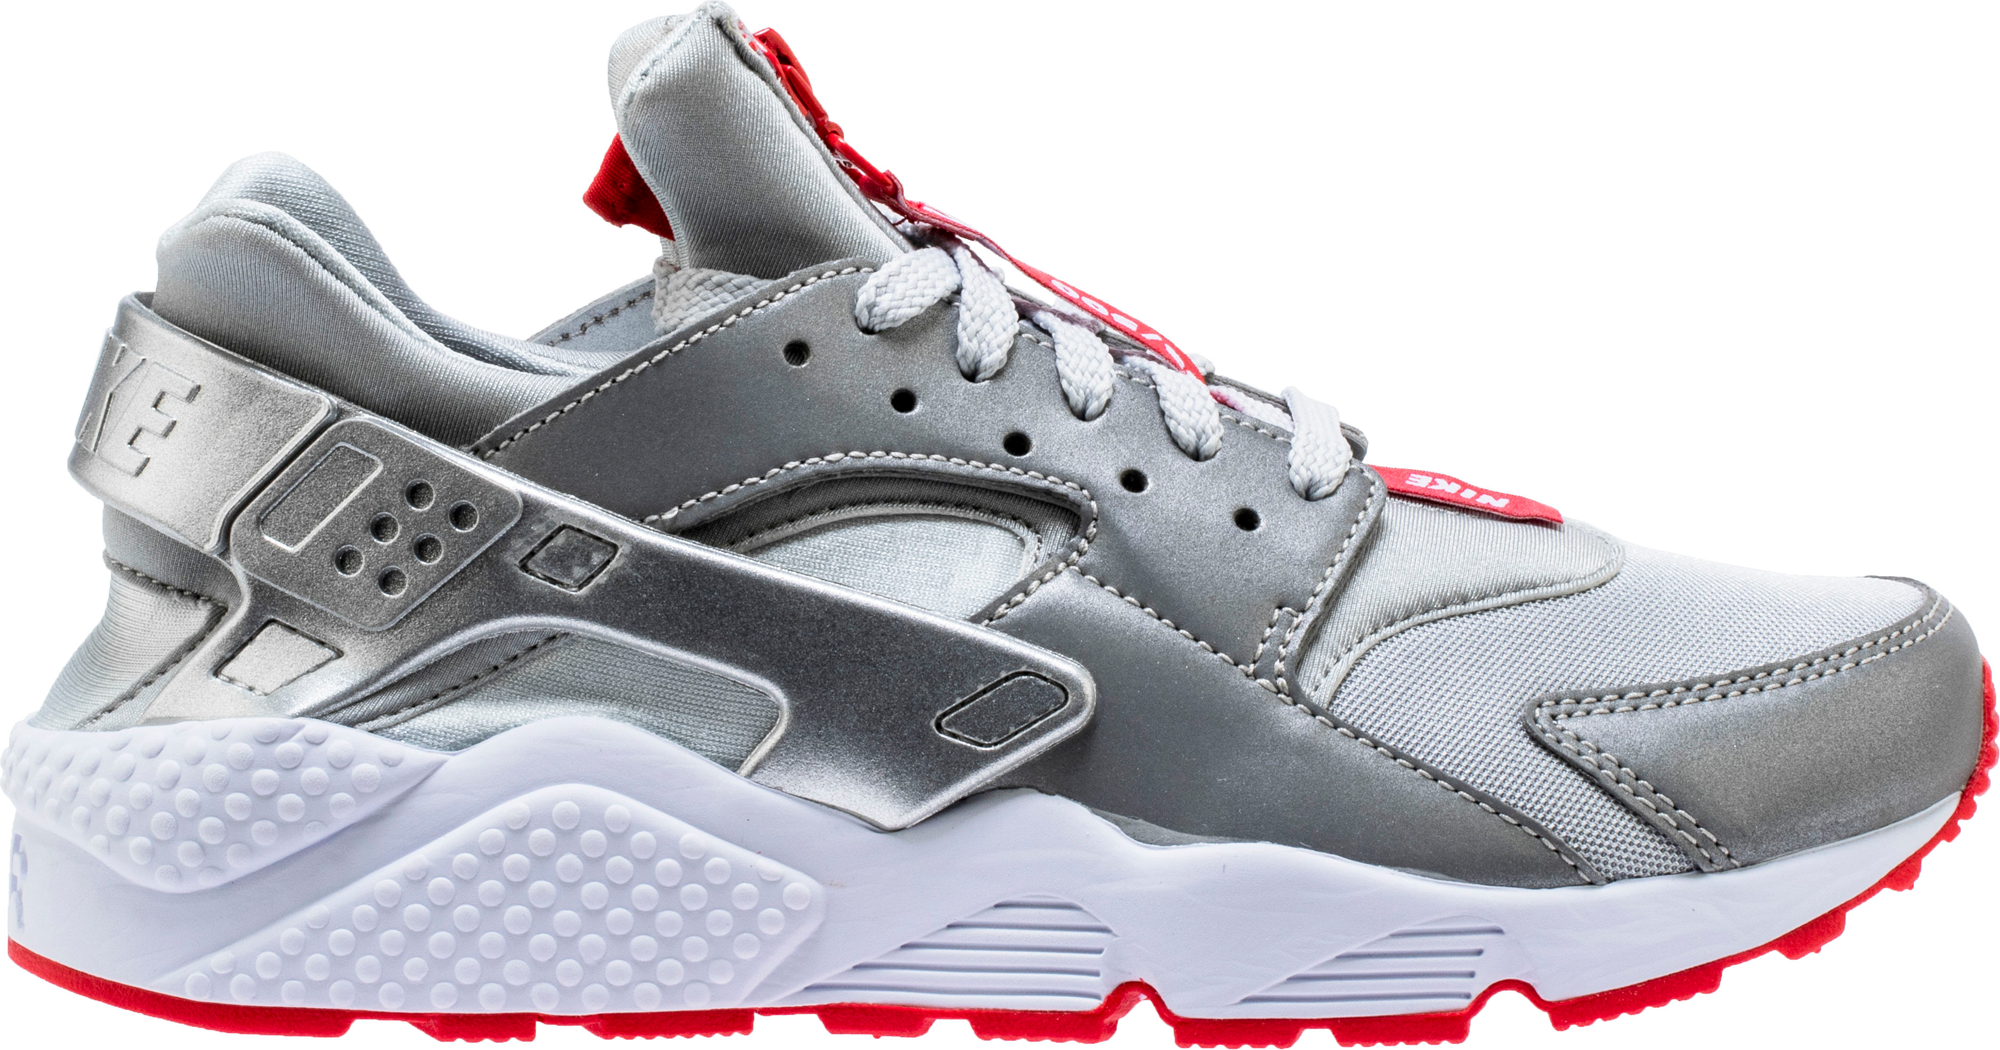 Air Huarache Run Zip Shoe Palace 25th Anniversary